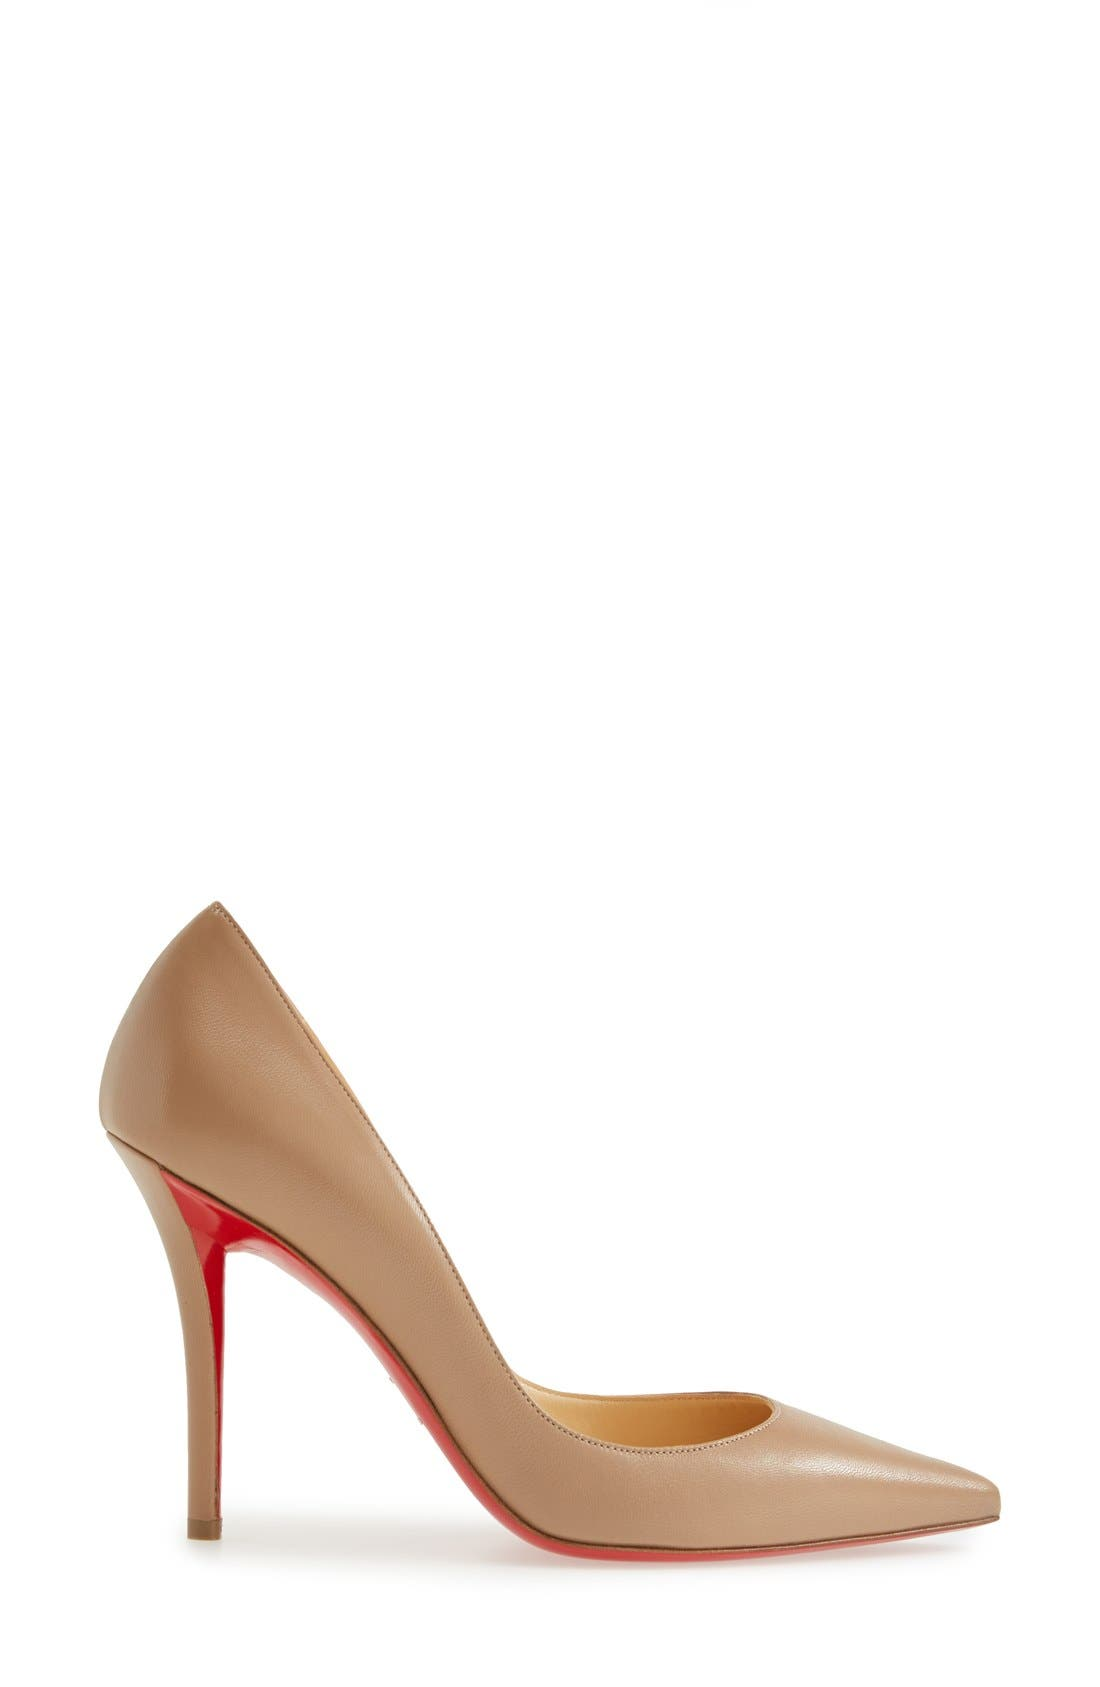 'Apostrophy' Pointy Toe Pump,                             Alternate thumbnail 19, color,